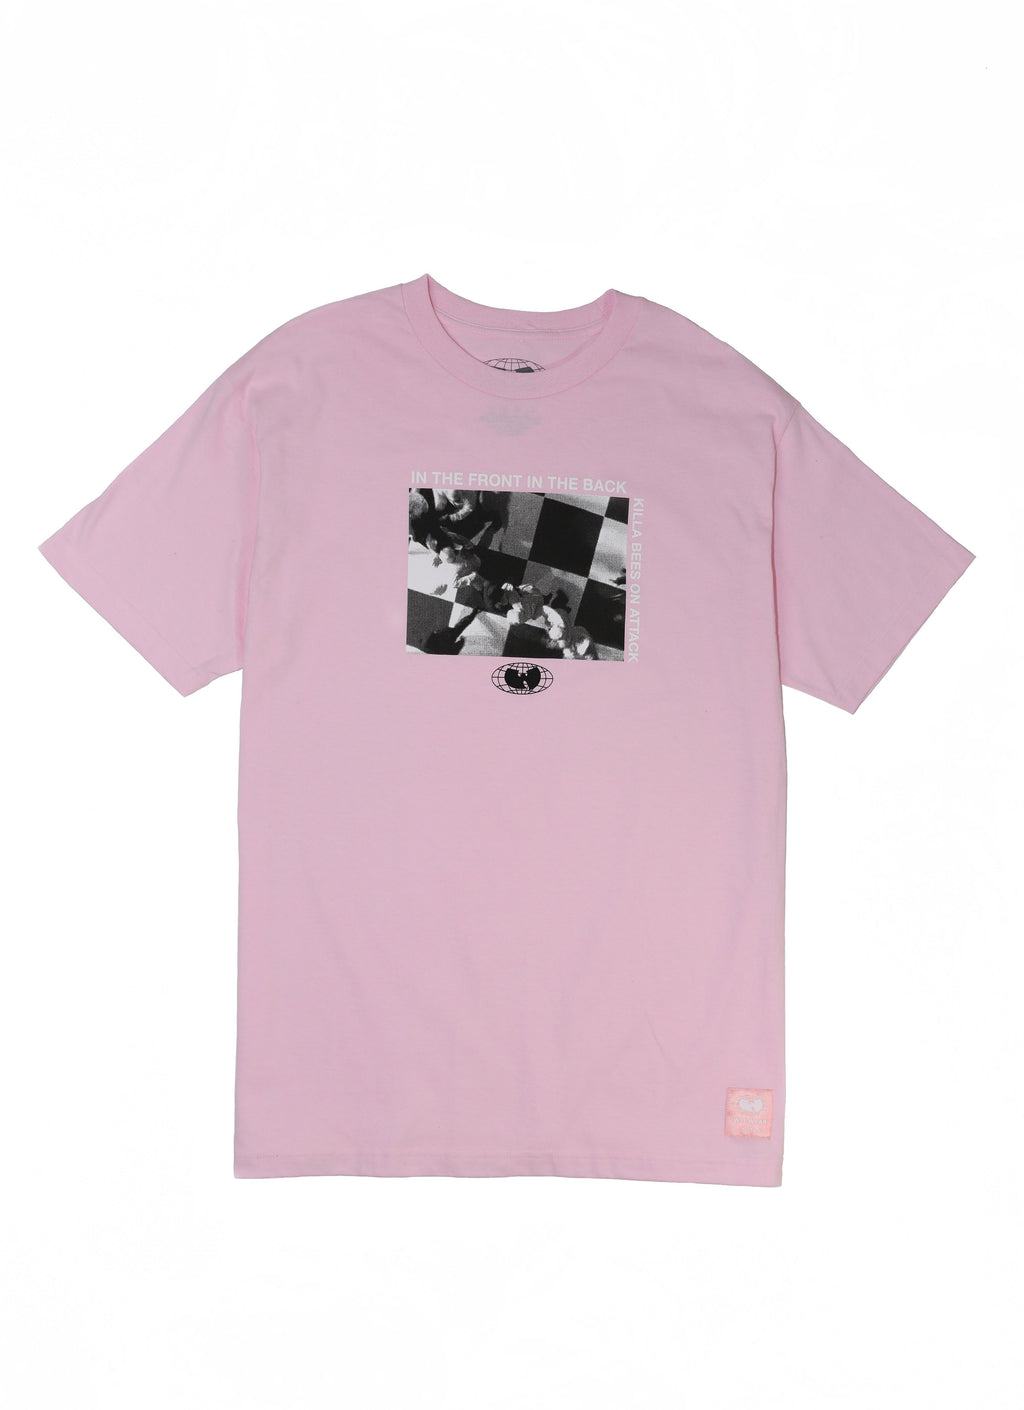 ATTACK TEE - PINK - Wu Wear